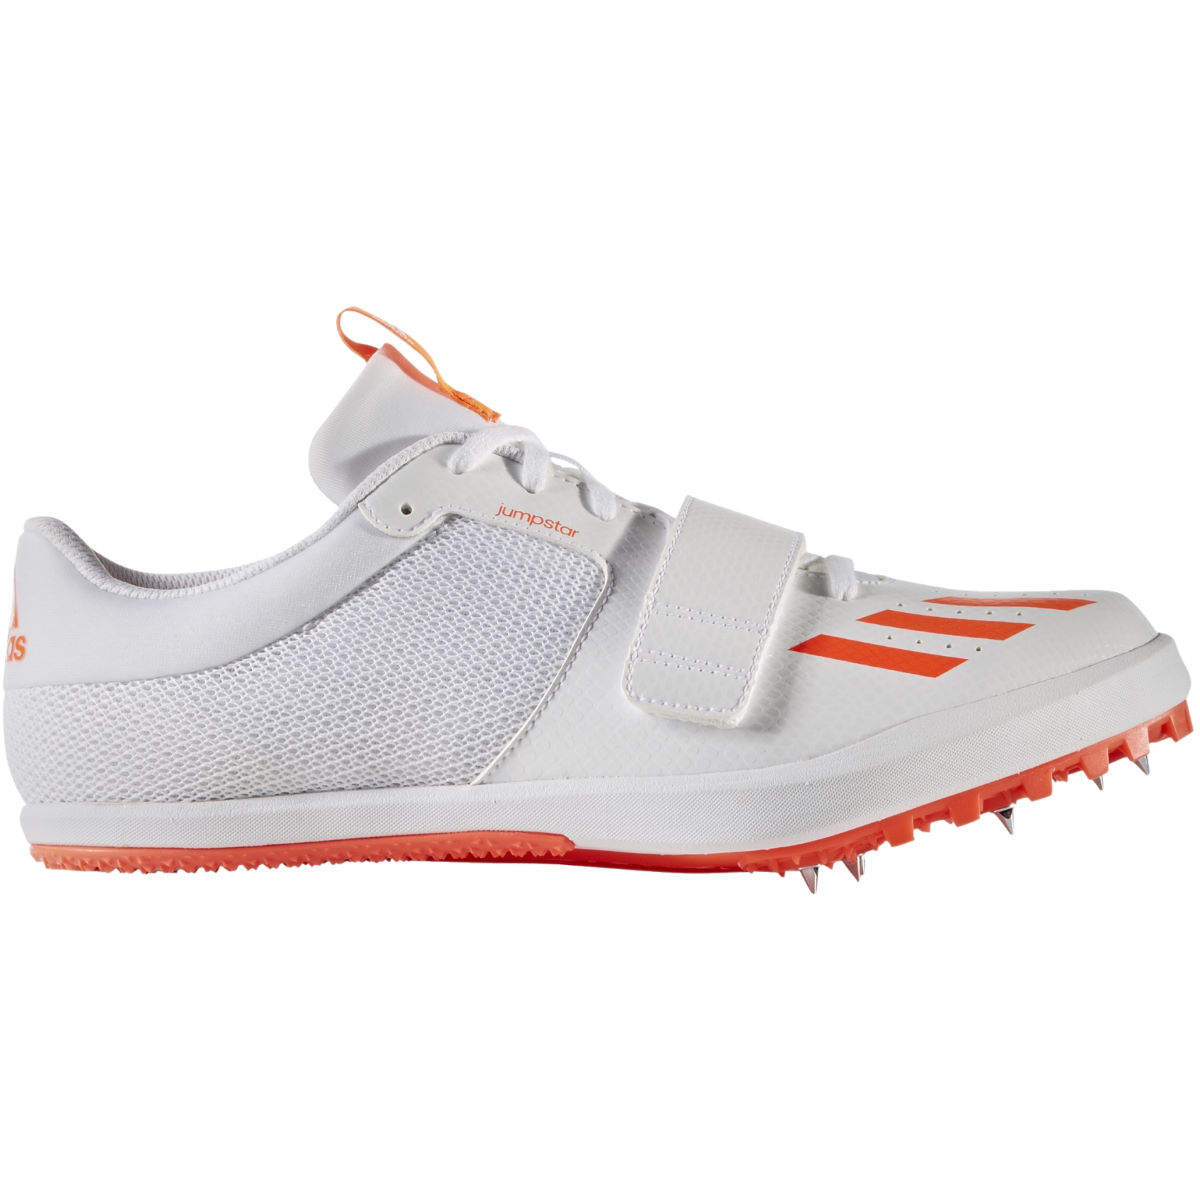 newest collection 7f074 e58bb Chaussures dathlétisme  adidas  Jumpstar Shoes  Wiggle Franc